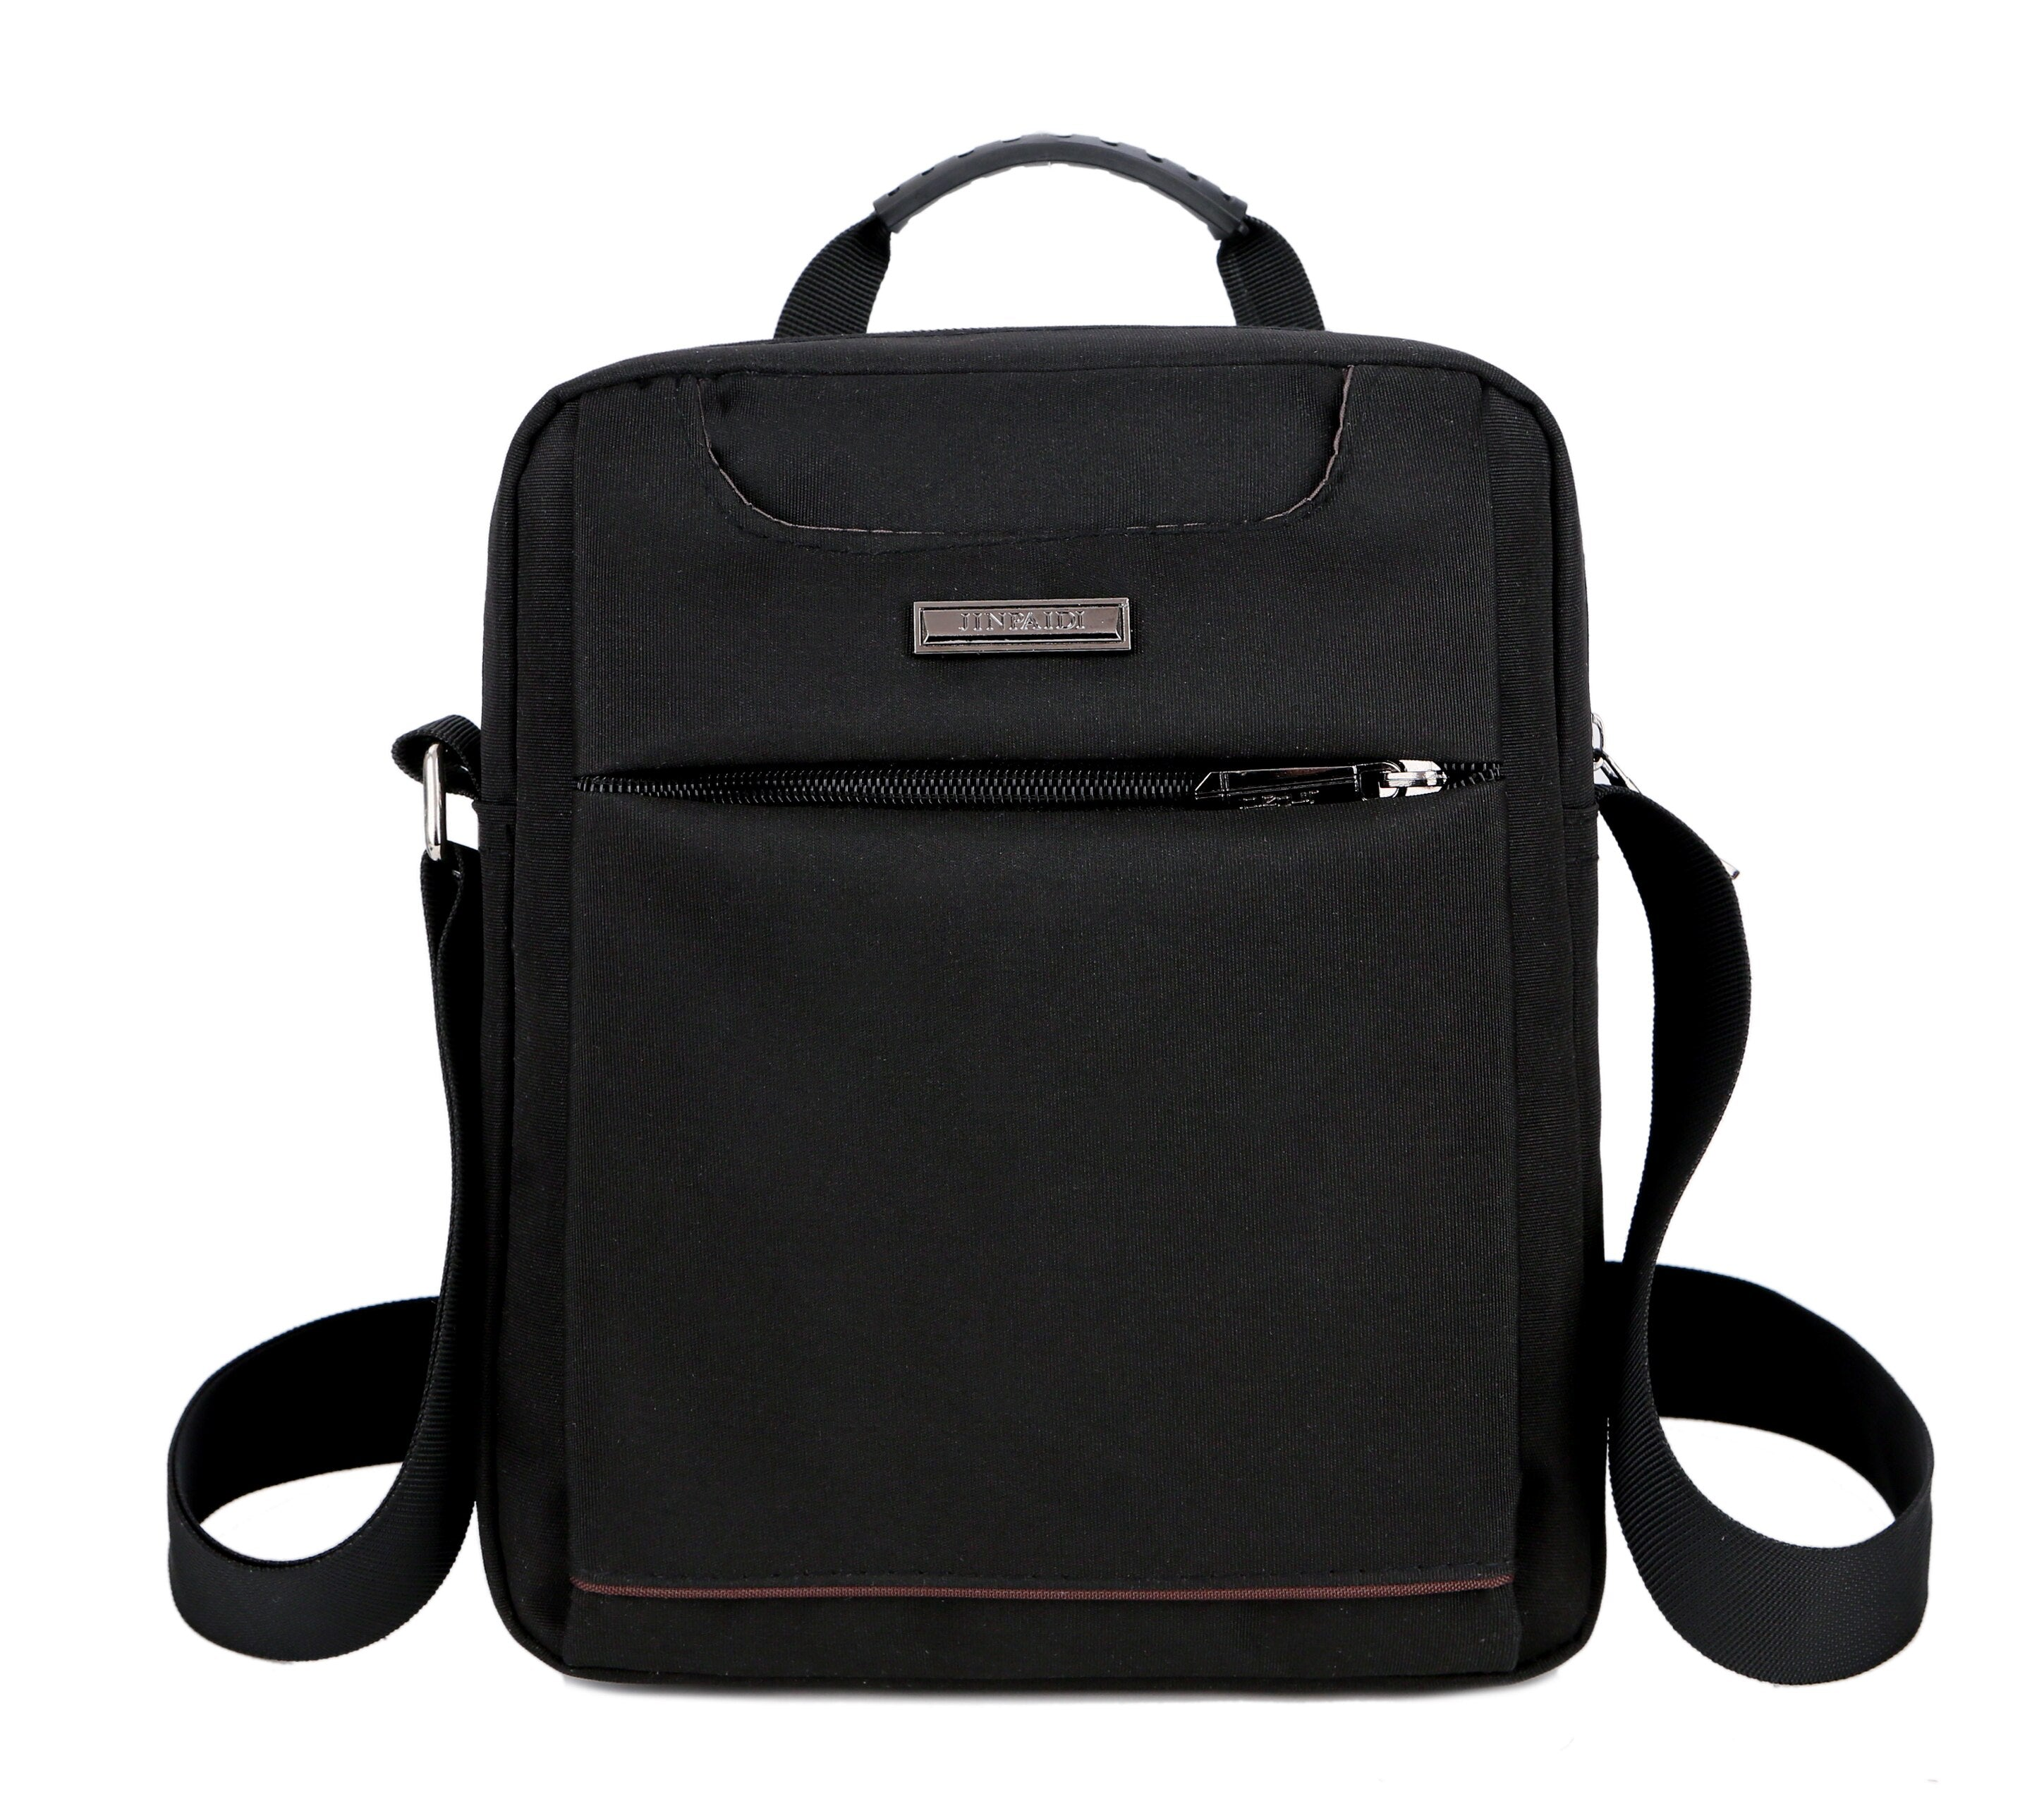 Fashion Crossbody Bags For Men 2020 casual shoulder bag waterproof Messenger bag trend business diagonal package